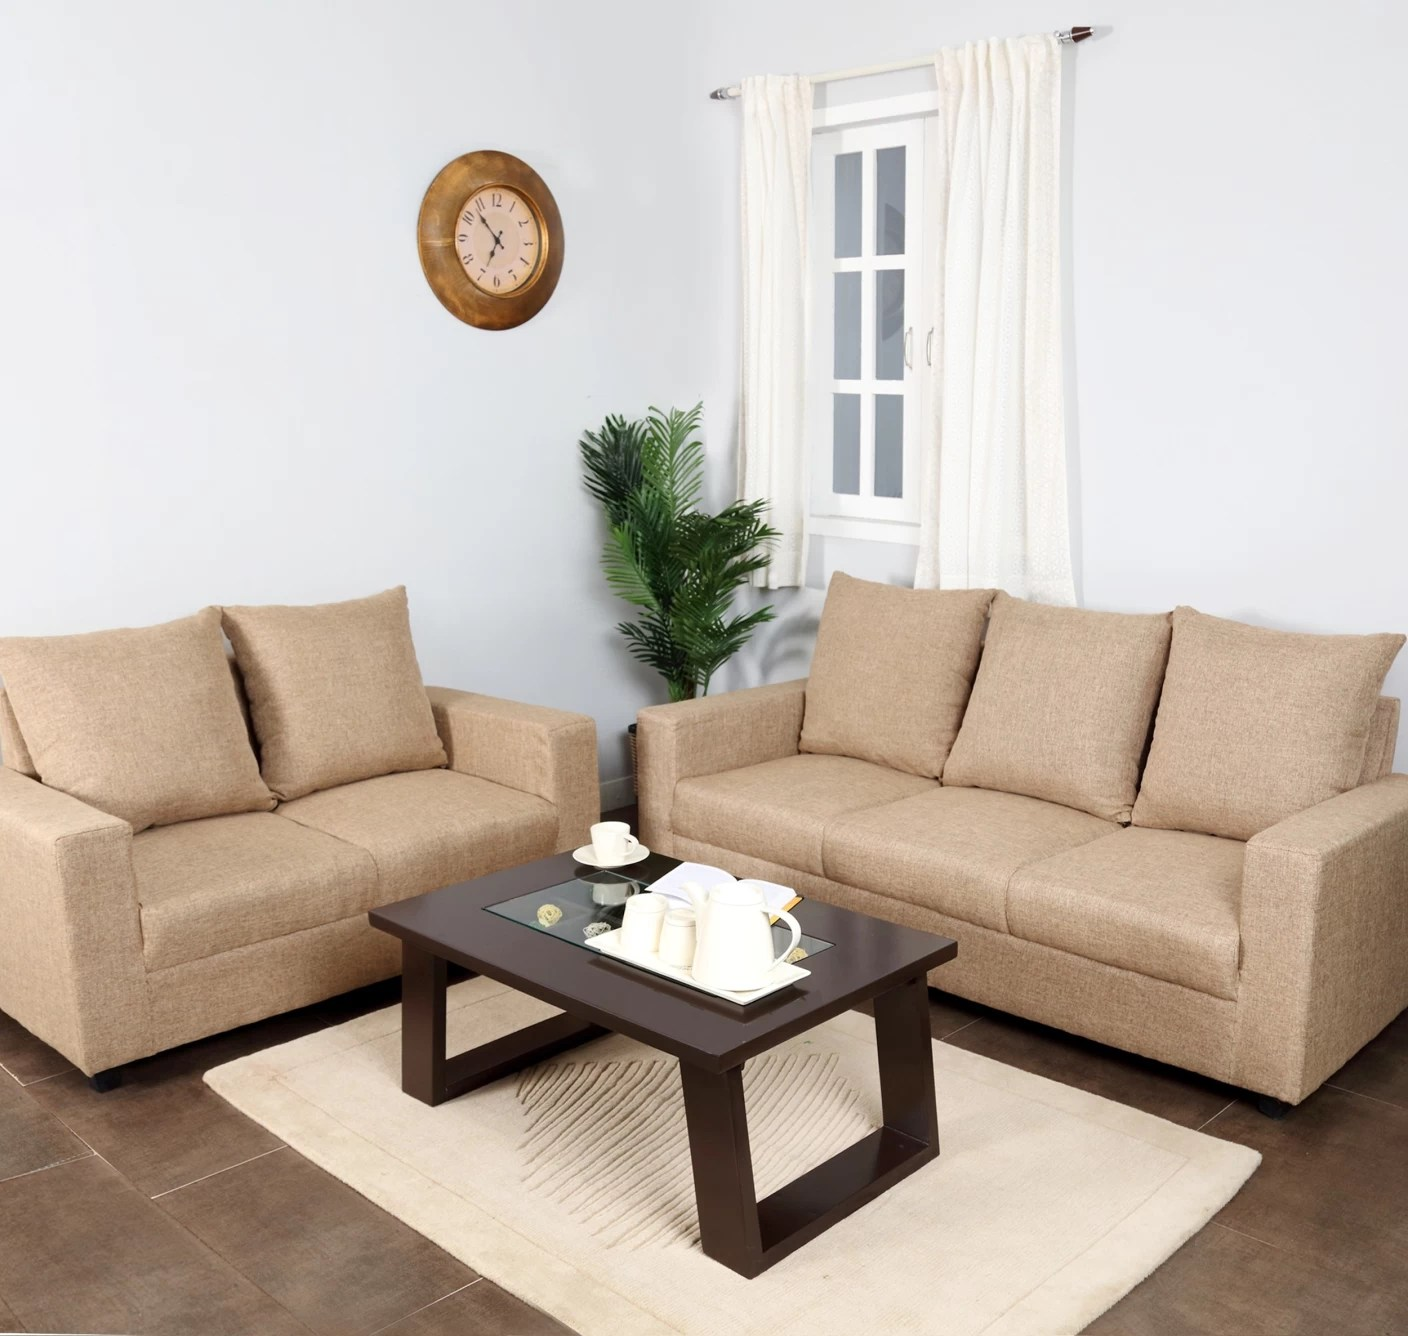 stanley sofa cost india sack 6 ft furnicity fabric 3 43 2 beige set price in buy